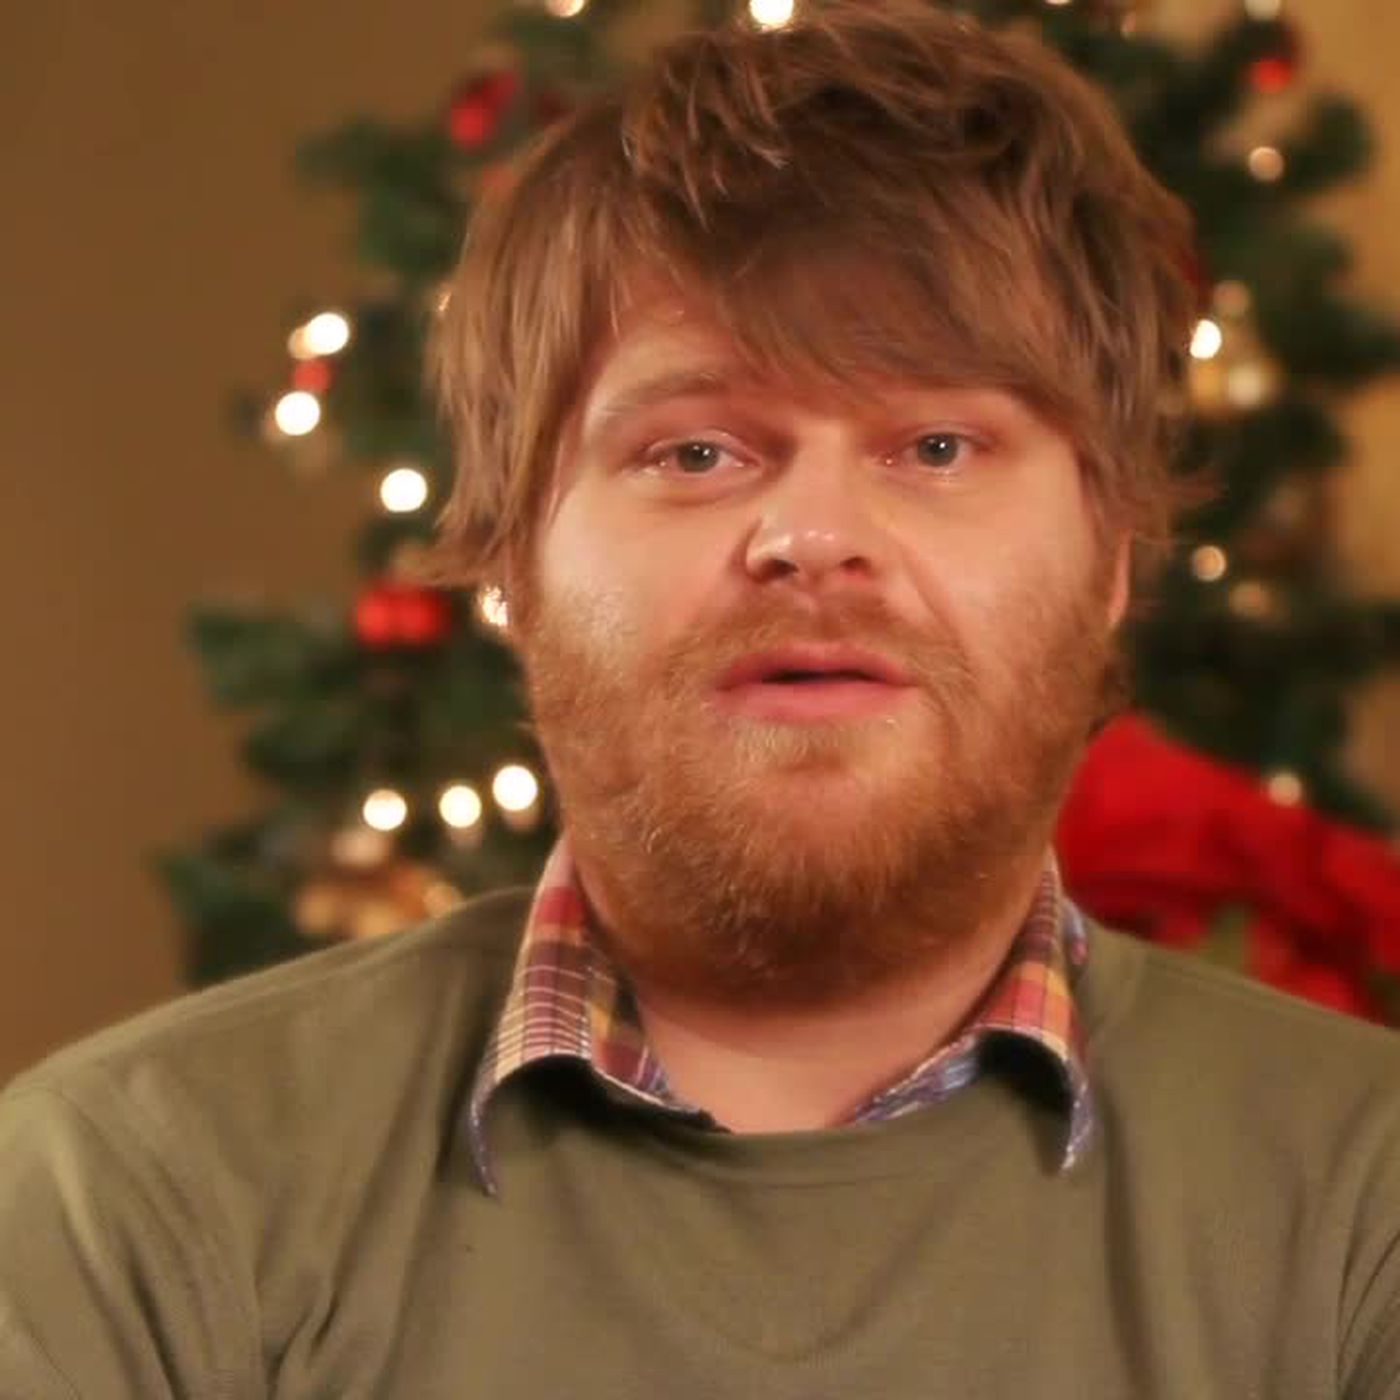 Drunk History Christmas.Drunk History Christmas Funny Or Die